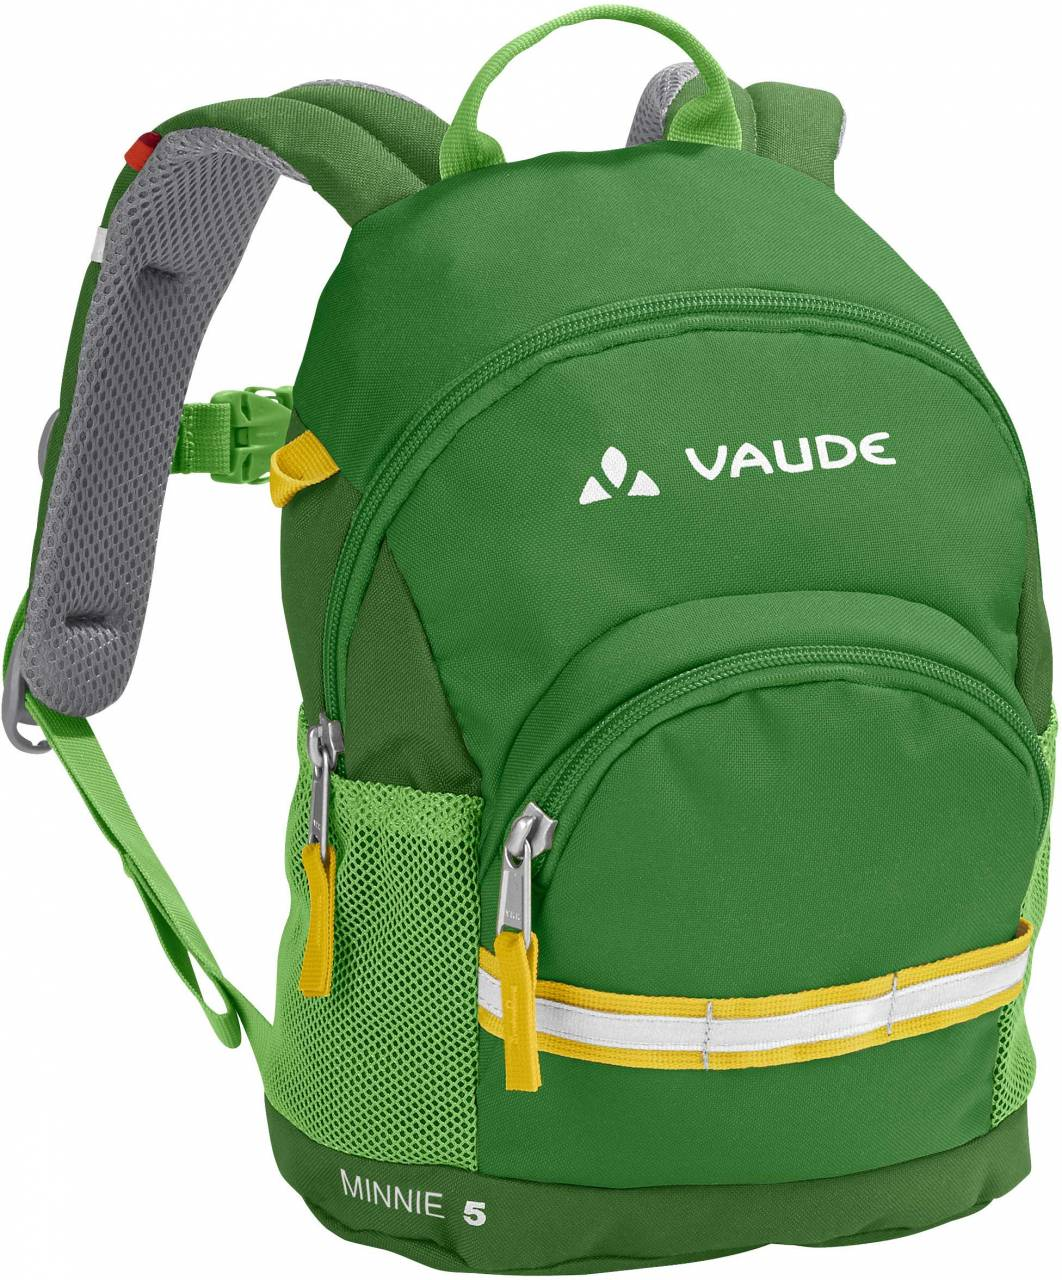 Vaude Minnie 5 parrot green